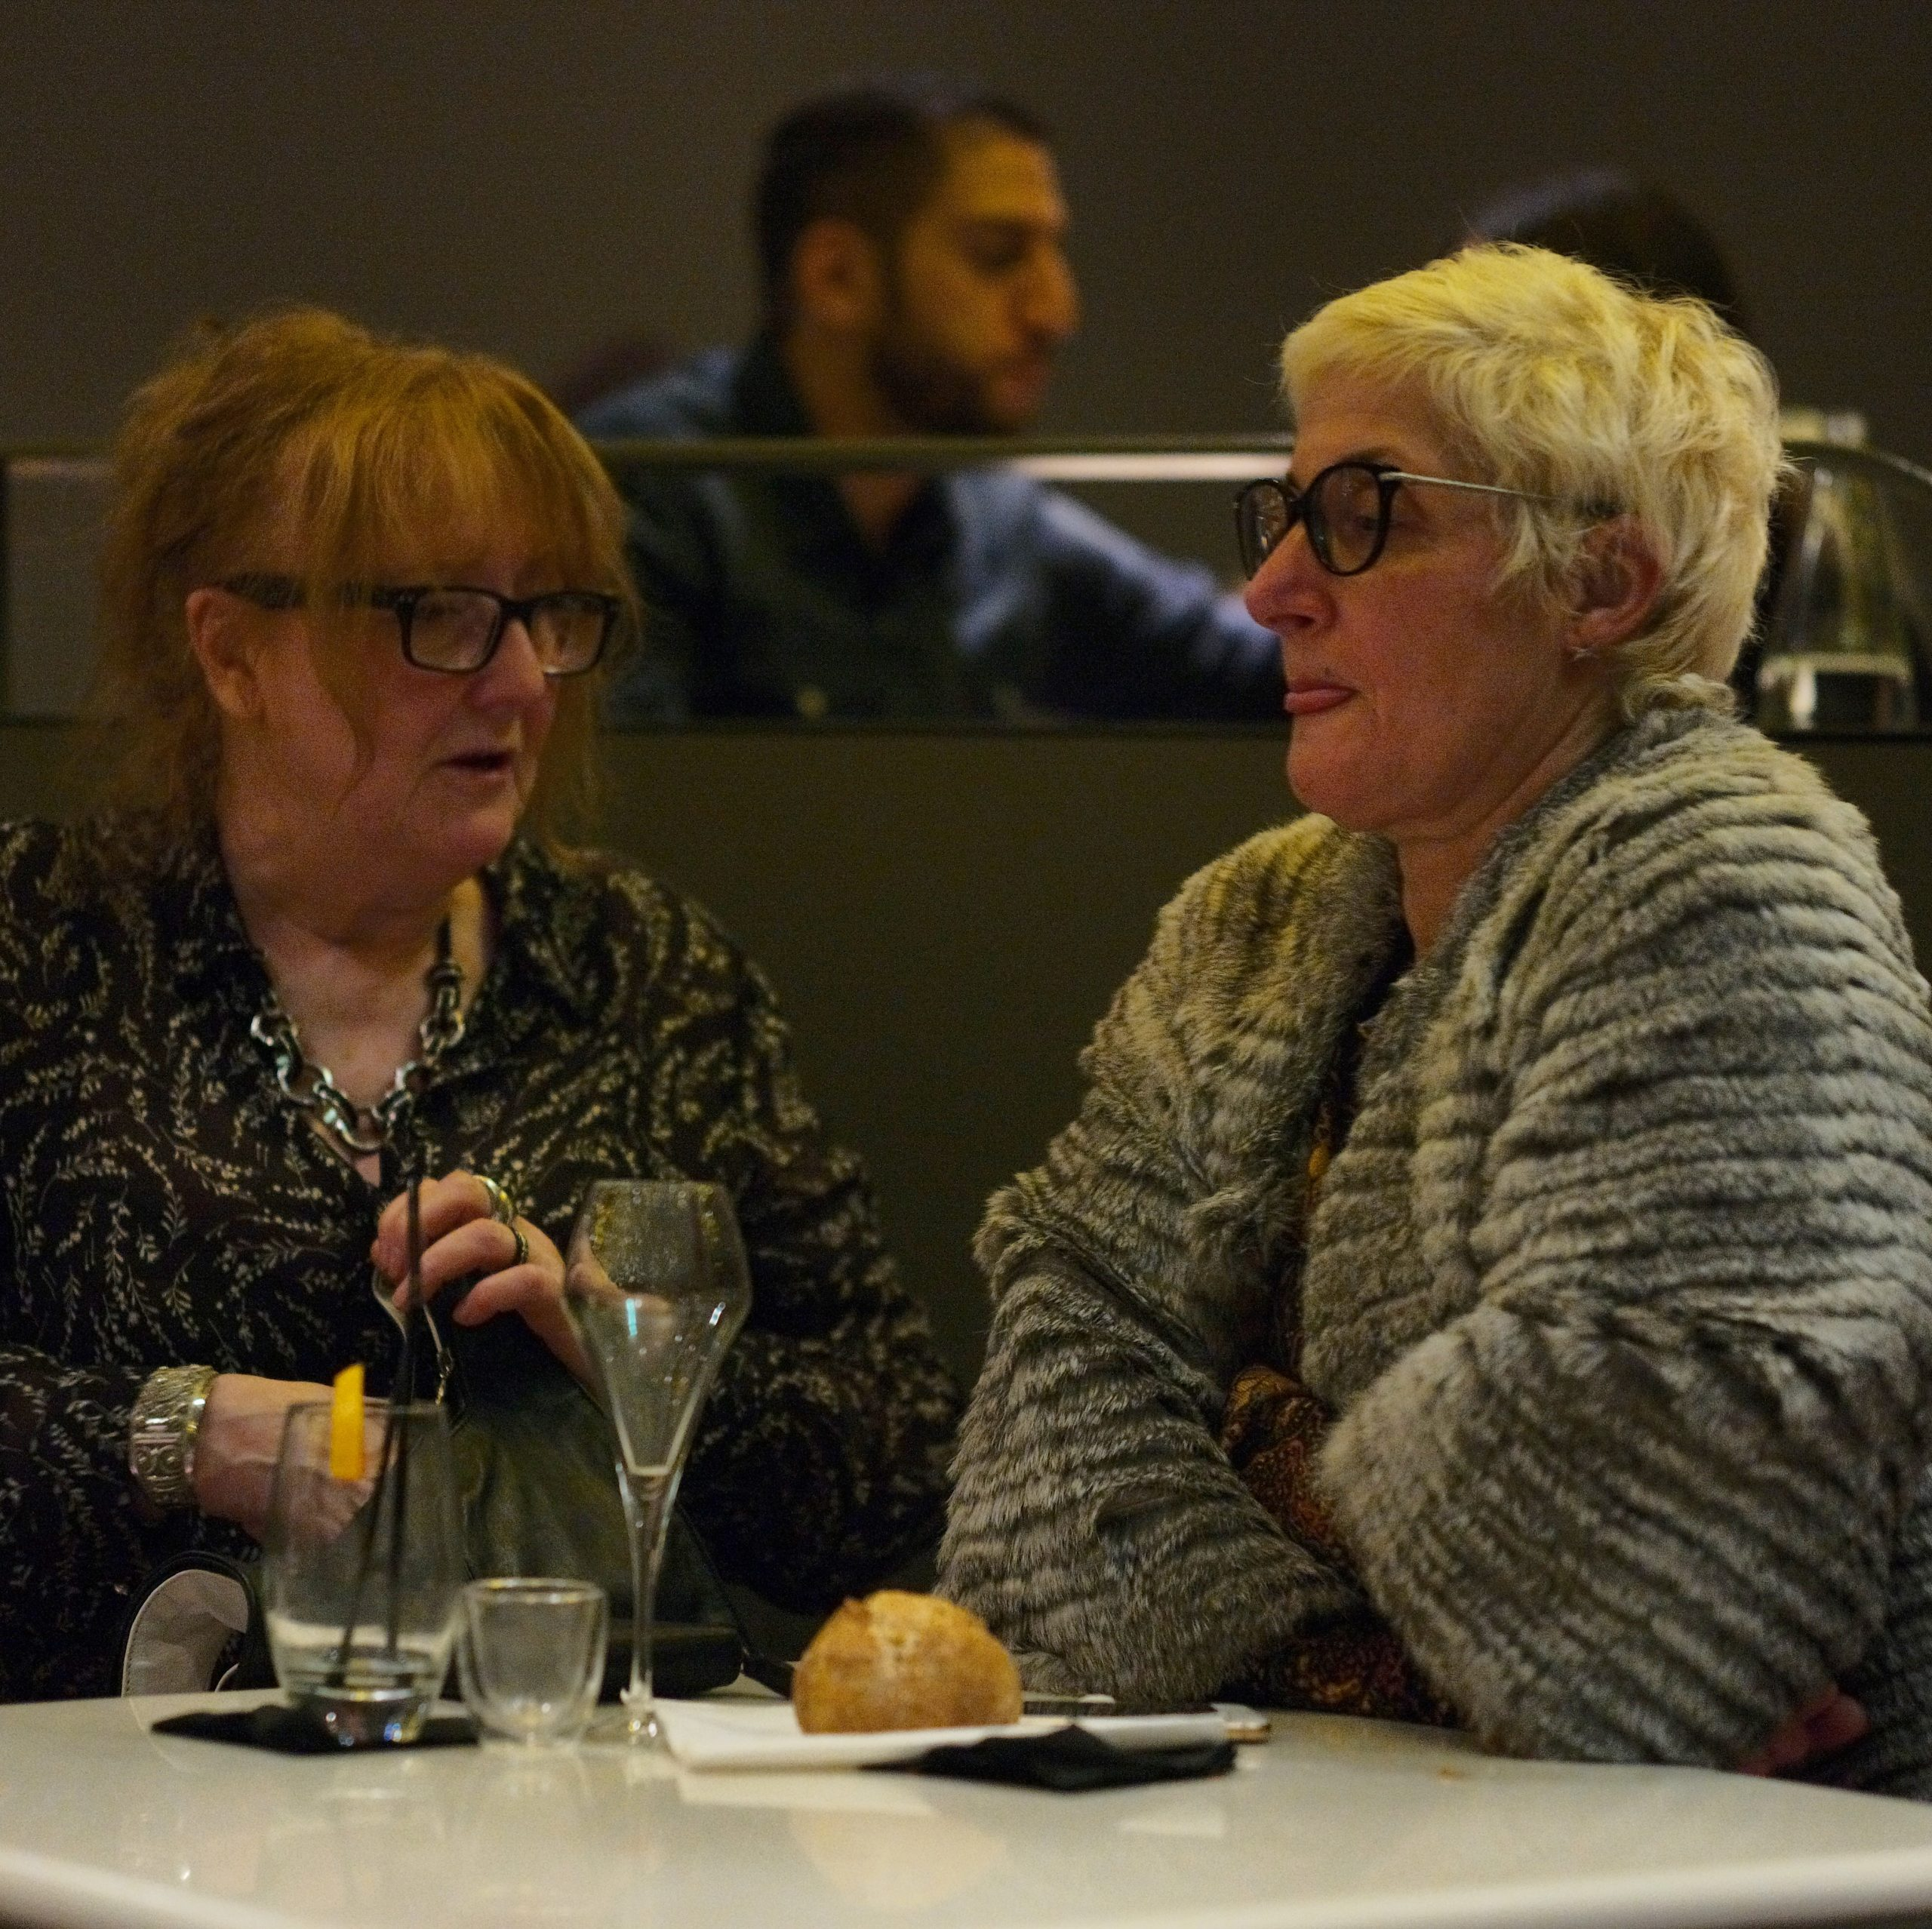 Women talking in Montparnasse Tour restaurant, Paris - Leica M10